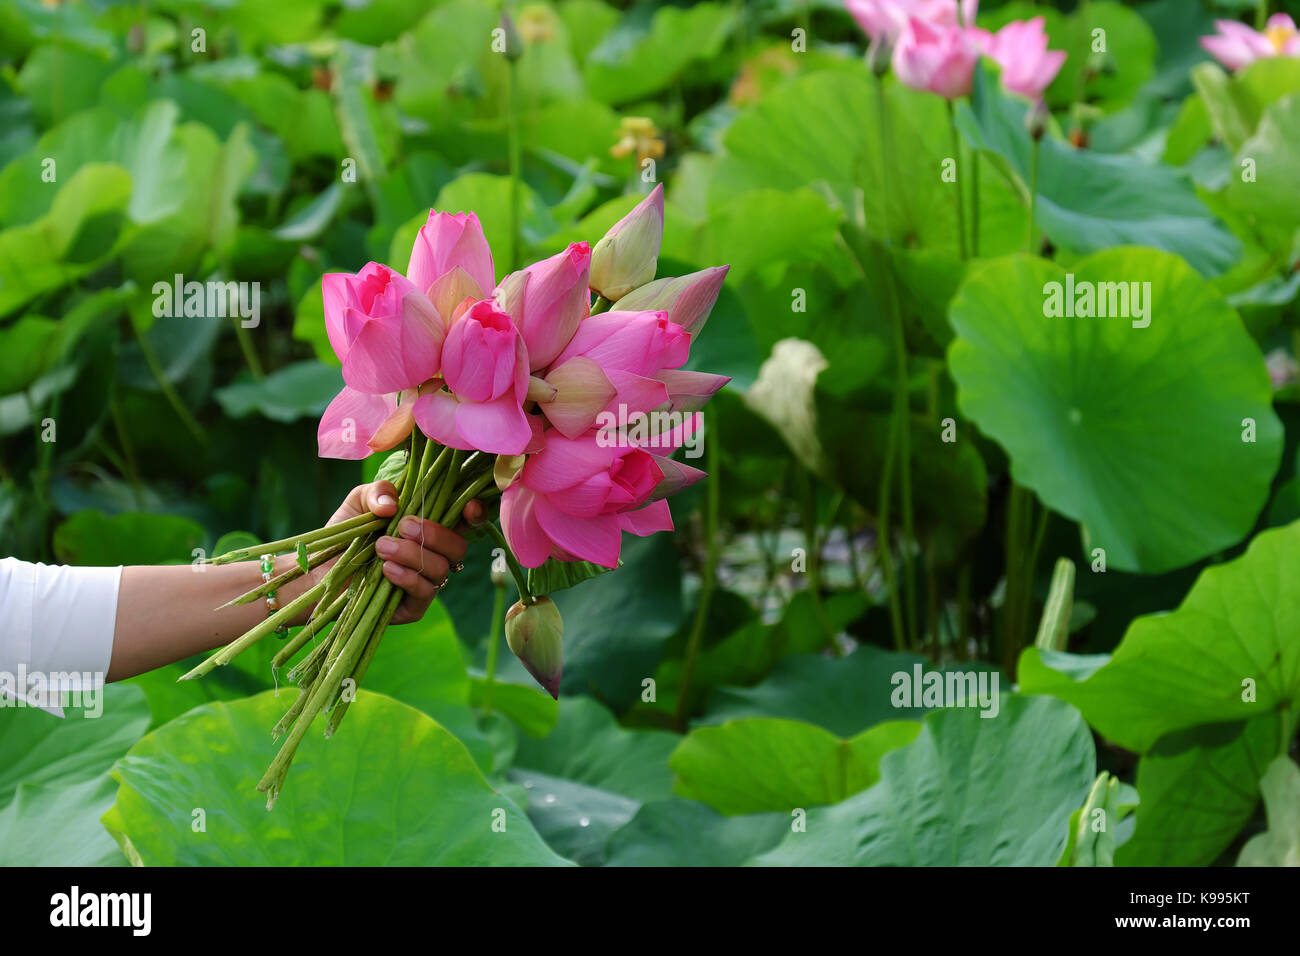 Bouquet lotus stock photos bouquet lotus stock images alamy woman hand hold lotus flower bouquet just harvest from lotus pond pink flower beautiful on izmirmasajfo